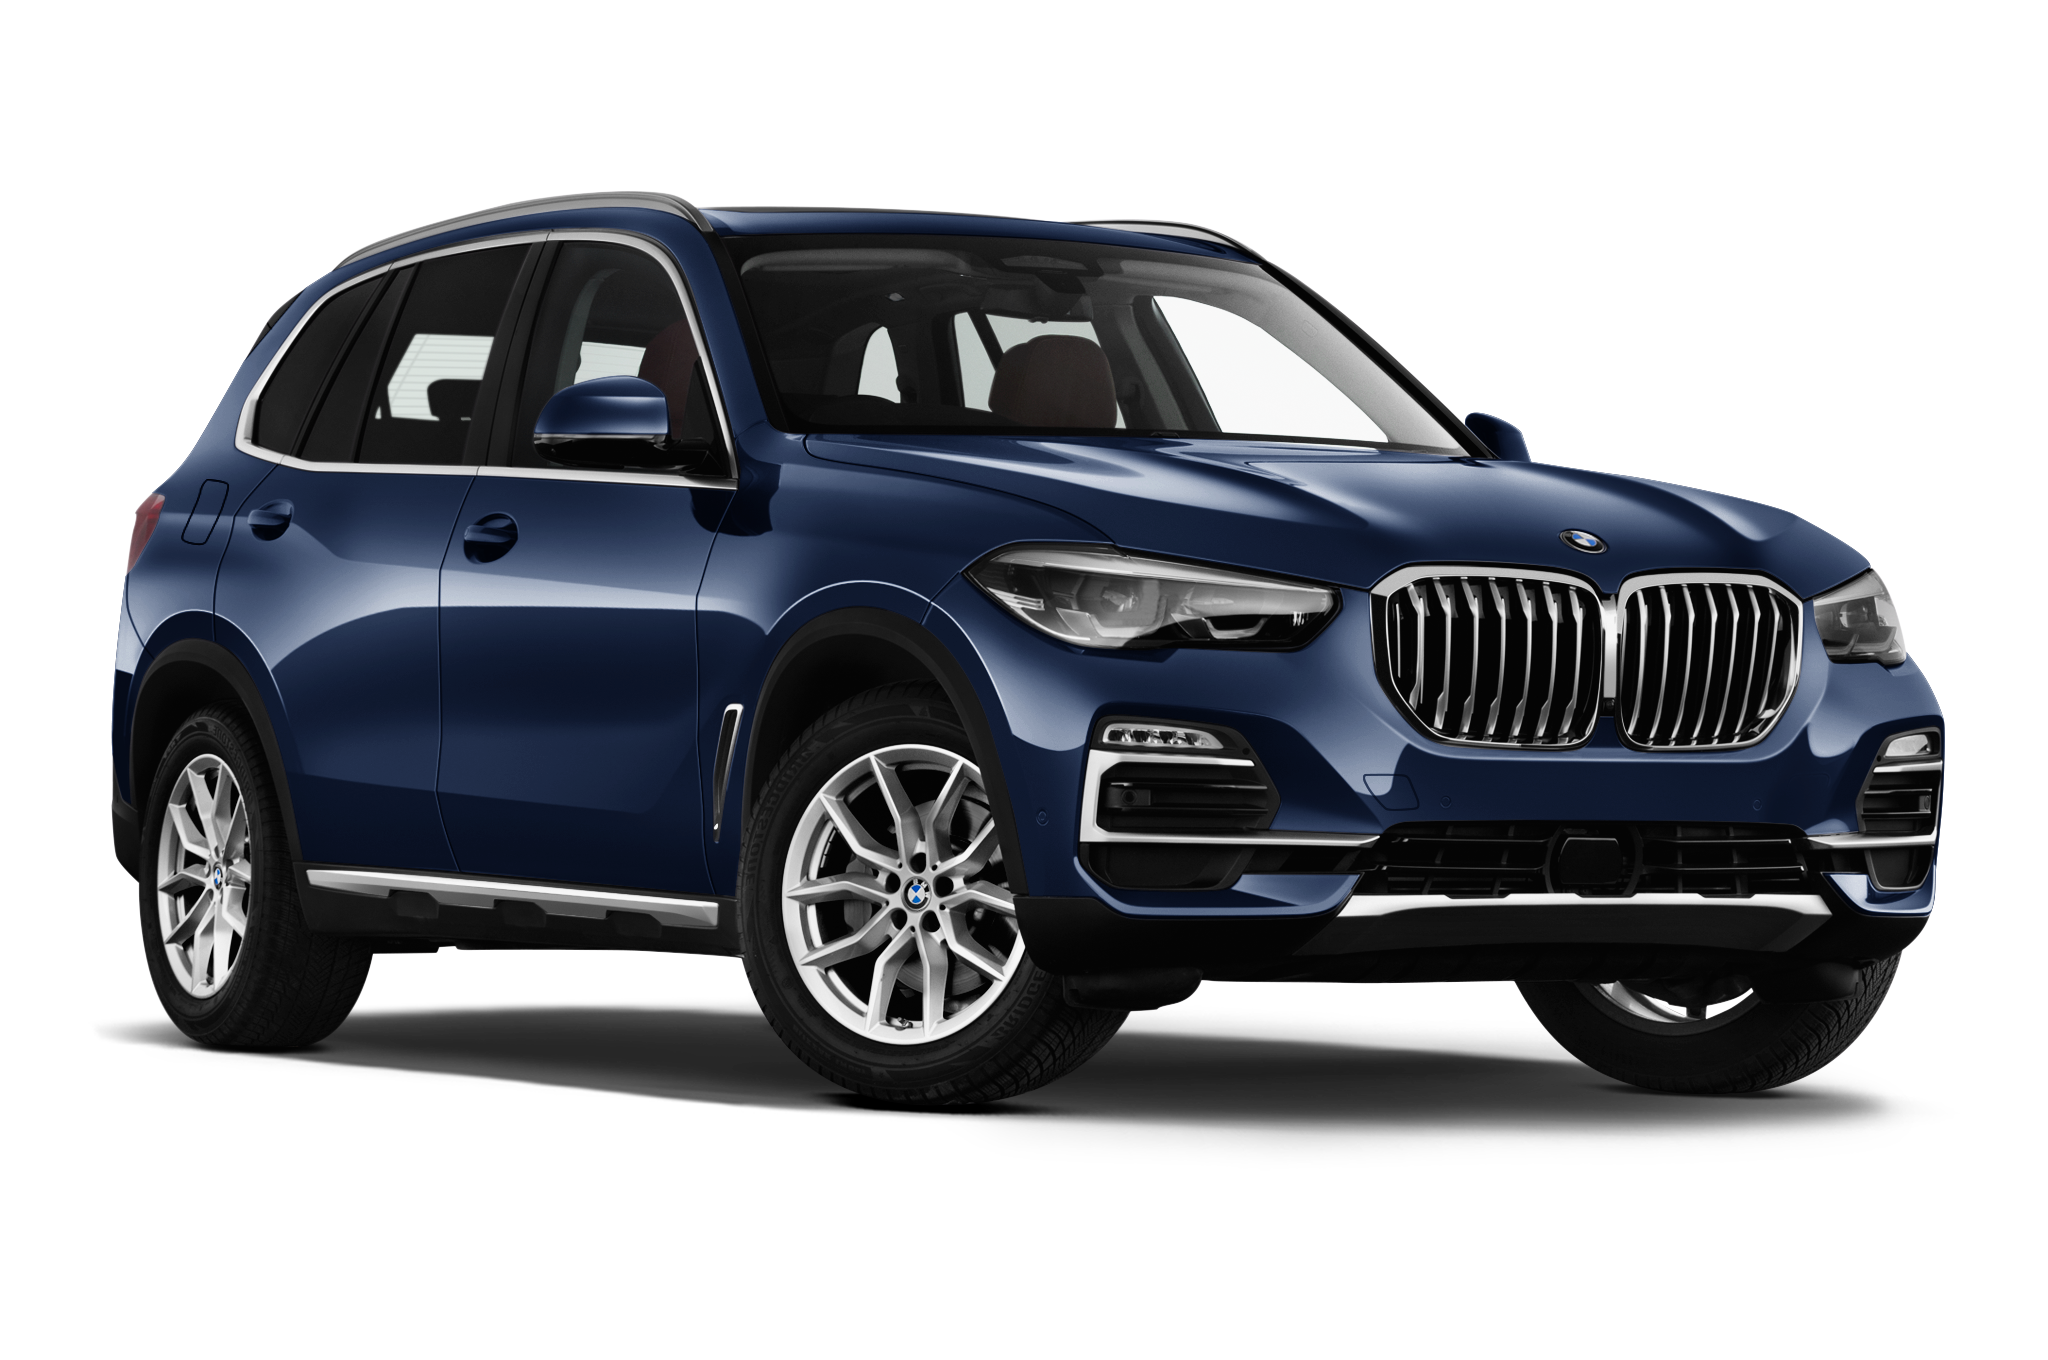 Bmw X5 Review 2021 Carwow